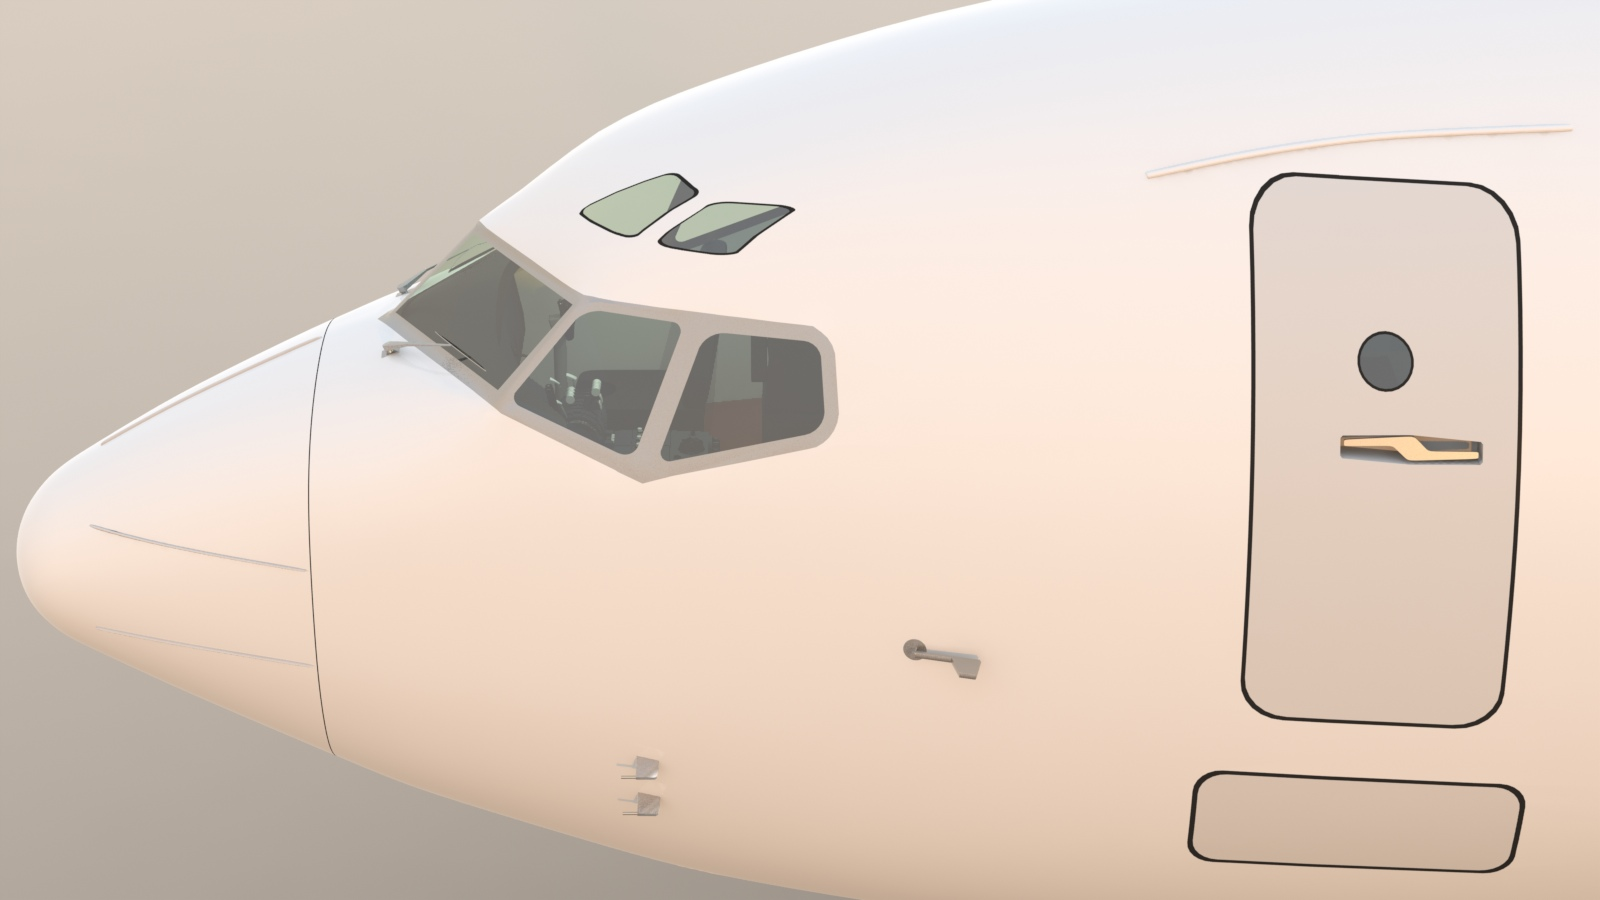 Boeing 727-100 Project finished for now  | Foundry Community